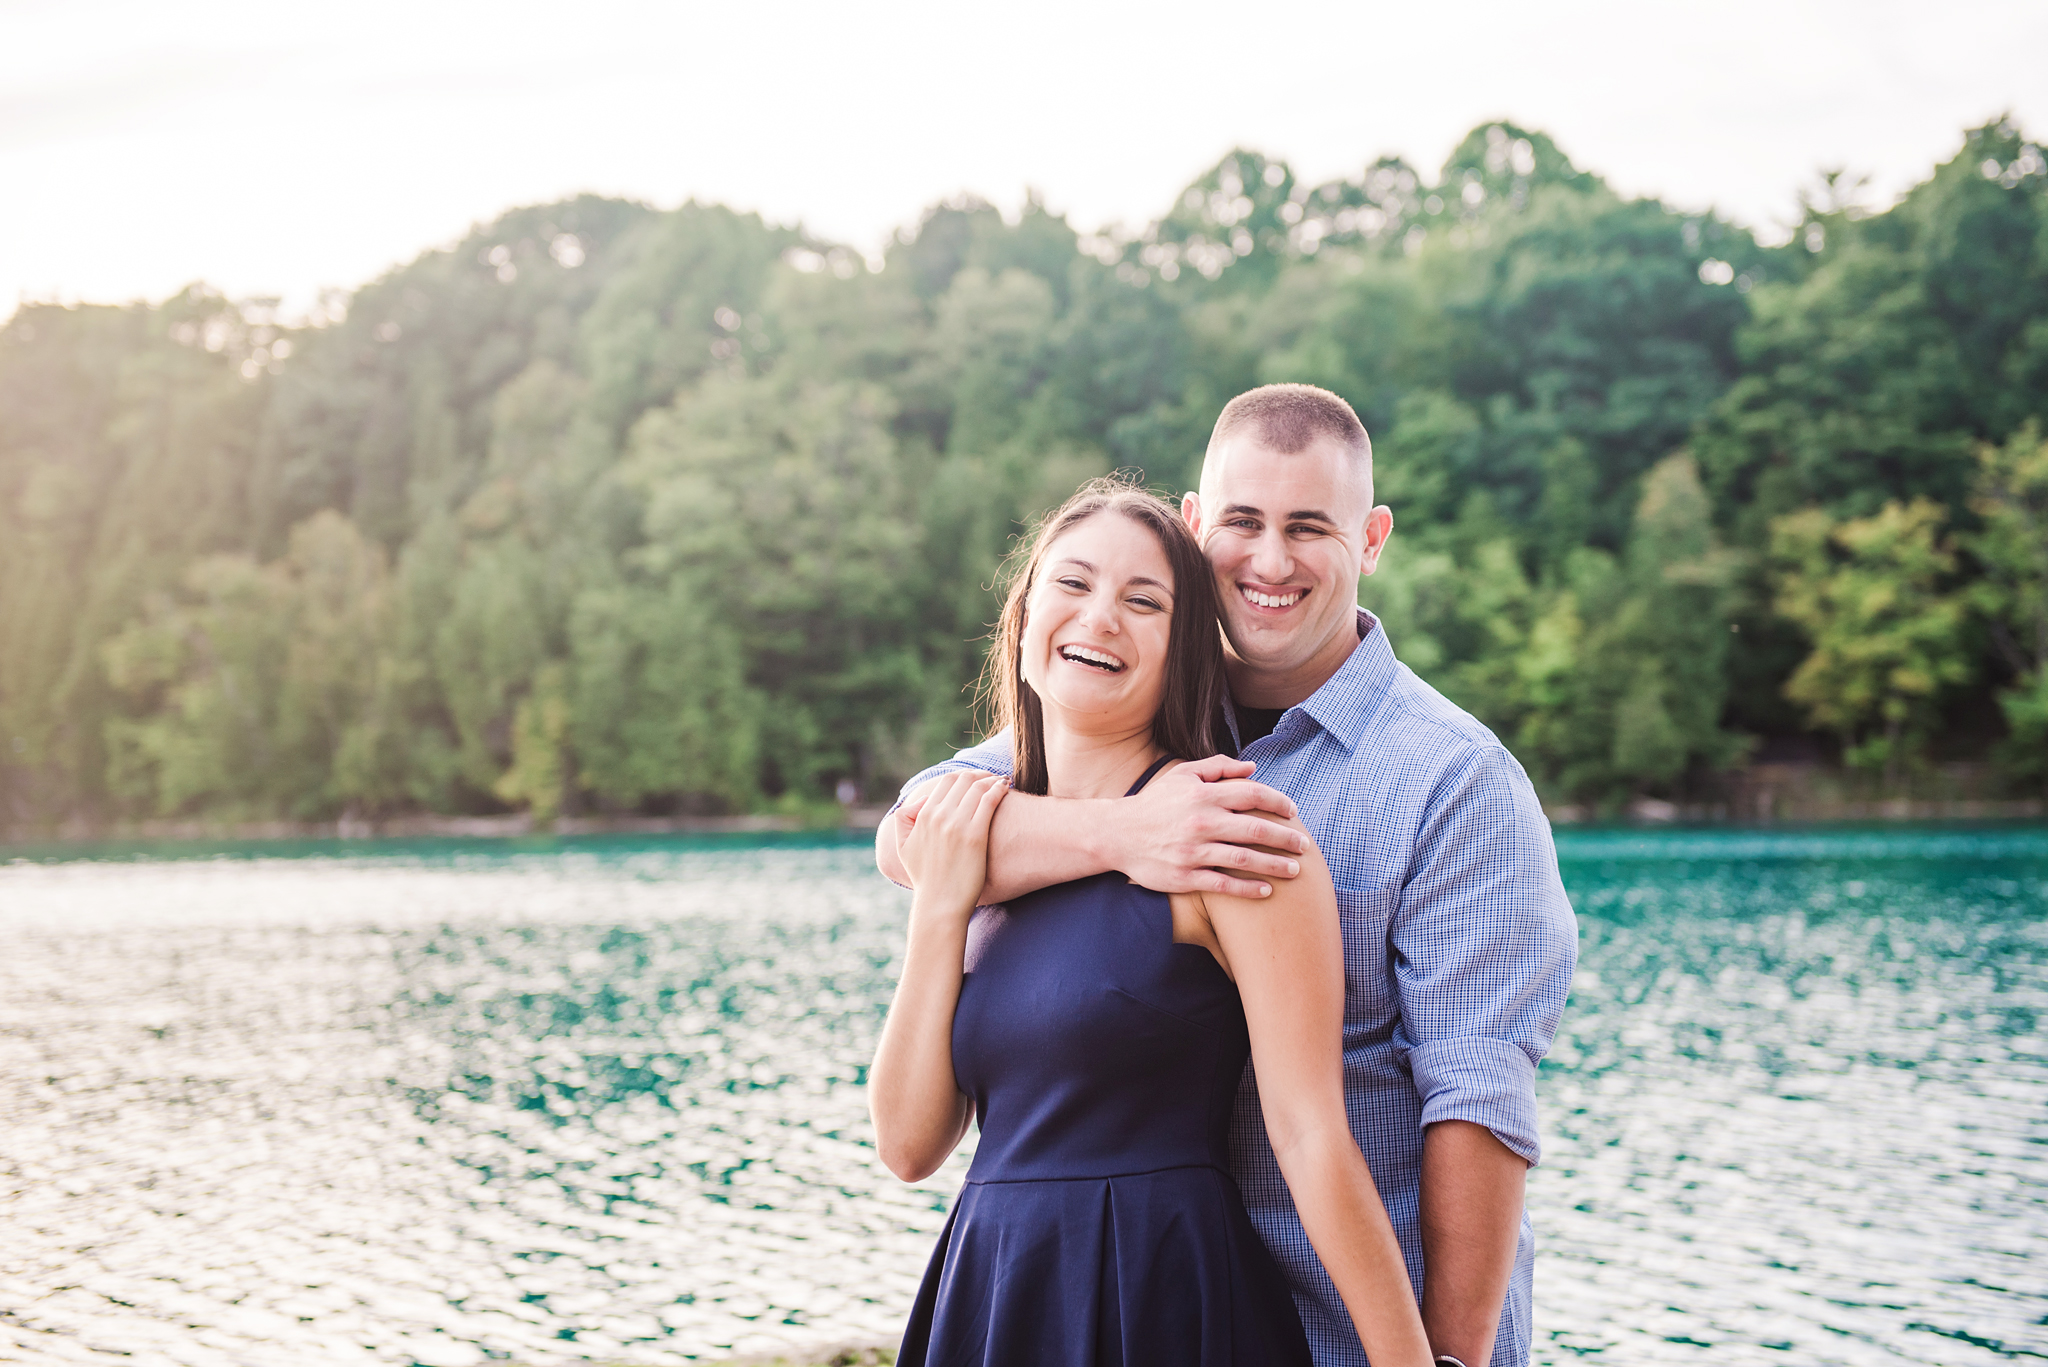 Green_Lakes_State_Park_Syracuse_Engagement_Session_JILL_STUDIO_Rochester_NY_Photographer_DSC_1042.jpg